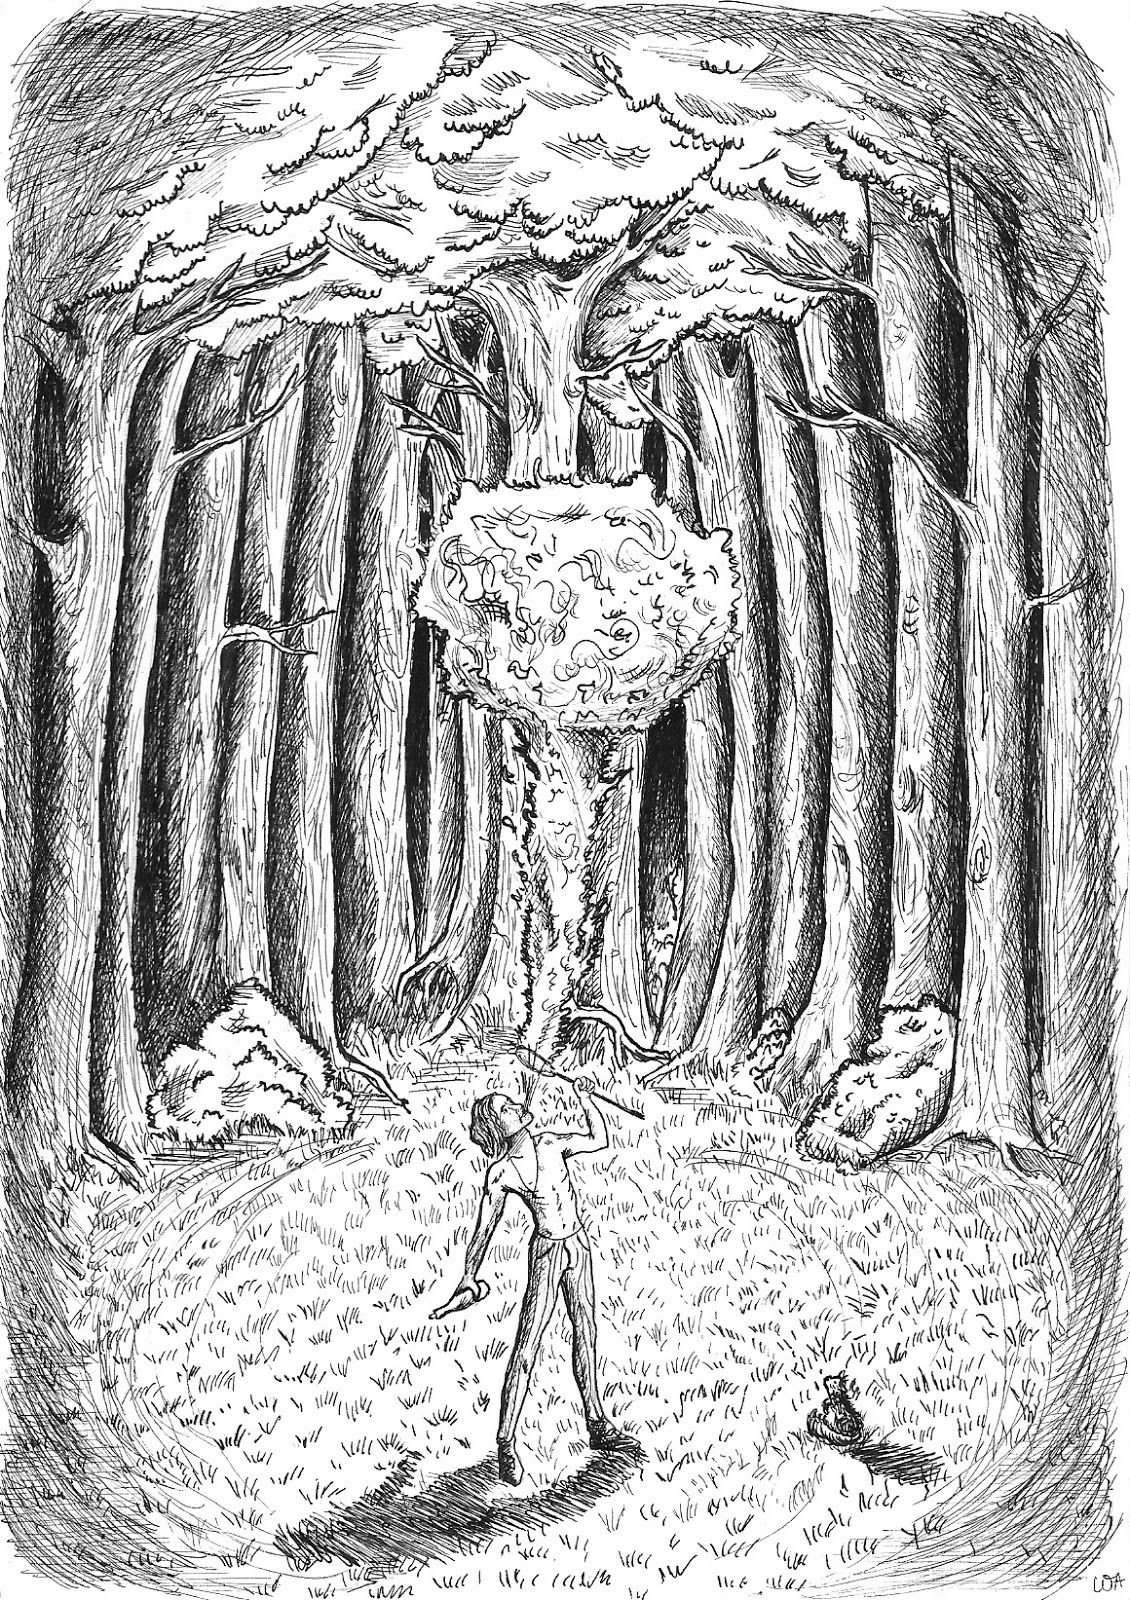 """Proposition Illustration From The Book """"Inkheart"""" Cornelia Funke"""